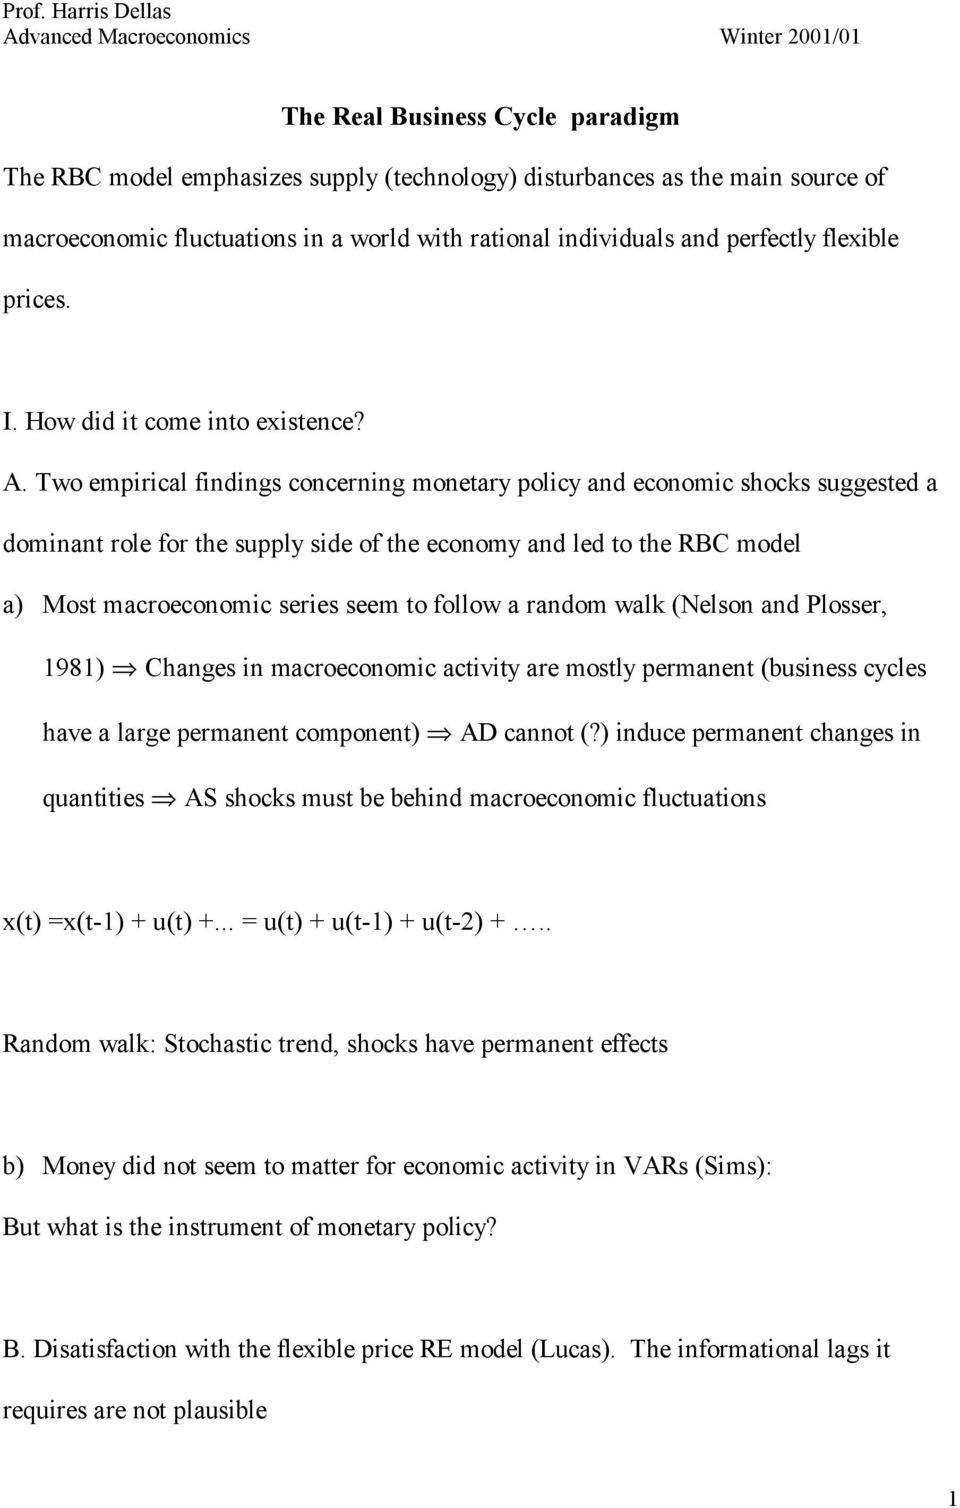 Two empirical findings concerning moneary policy and economic shocks suggesed a dominan role for he supply side of he economy and led o he RBC model a) Mos macroeconomic series seem o follow a random